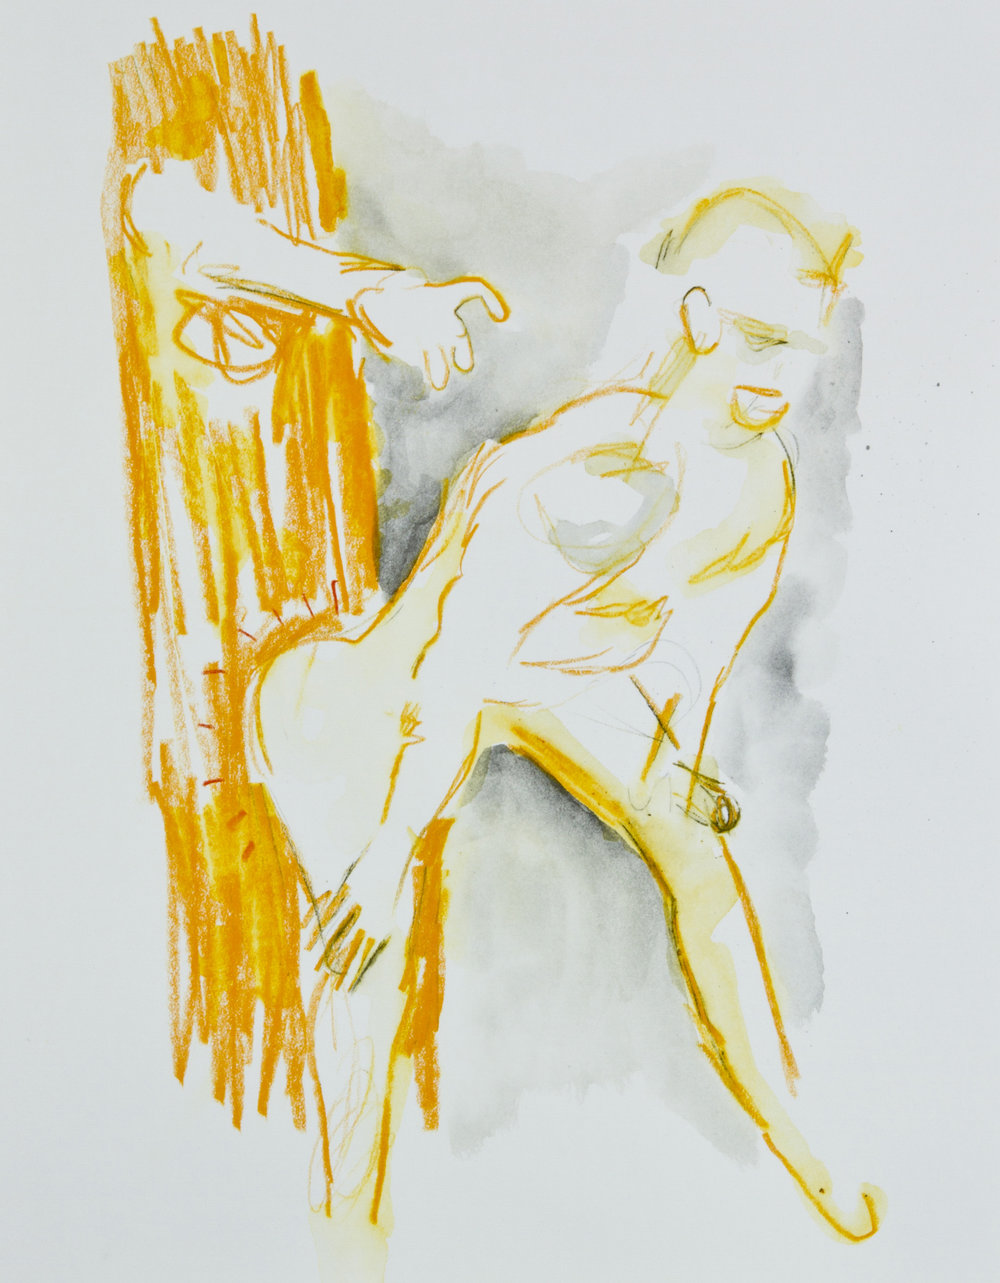 Waxing The Abyss, 2013, graphite, crayon and watercolor pencil on paper, 11x14 inches